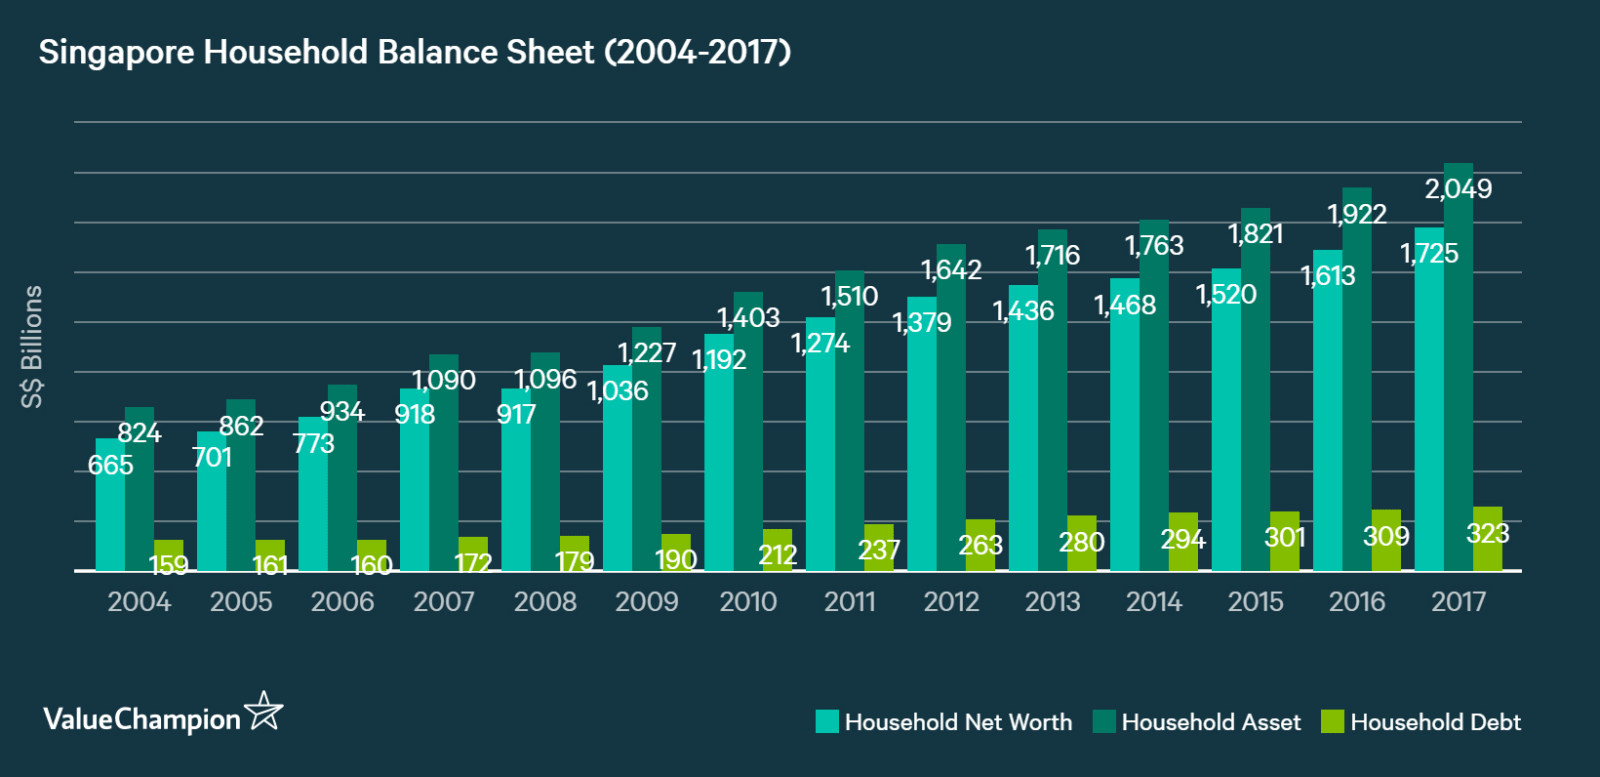 Singaporean households have been growing their balance sheet since 2004 by roughly 7% per year until 2017, with their debt growing slightly faster than asset.